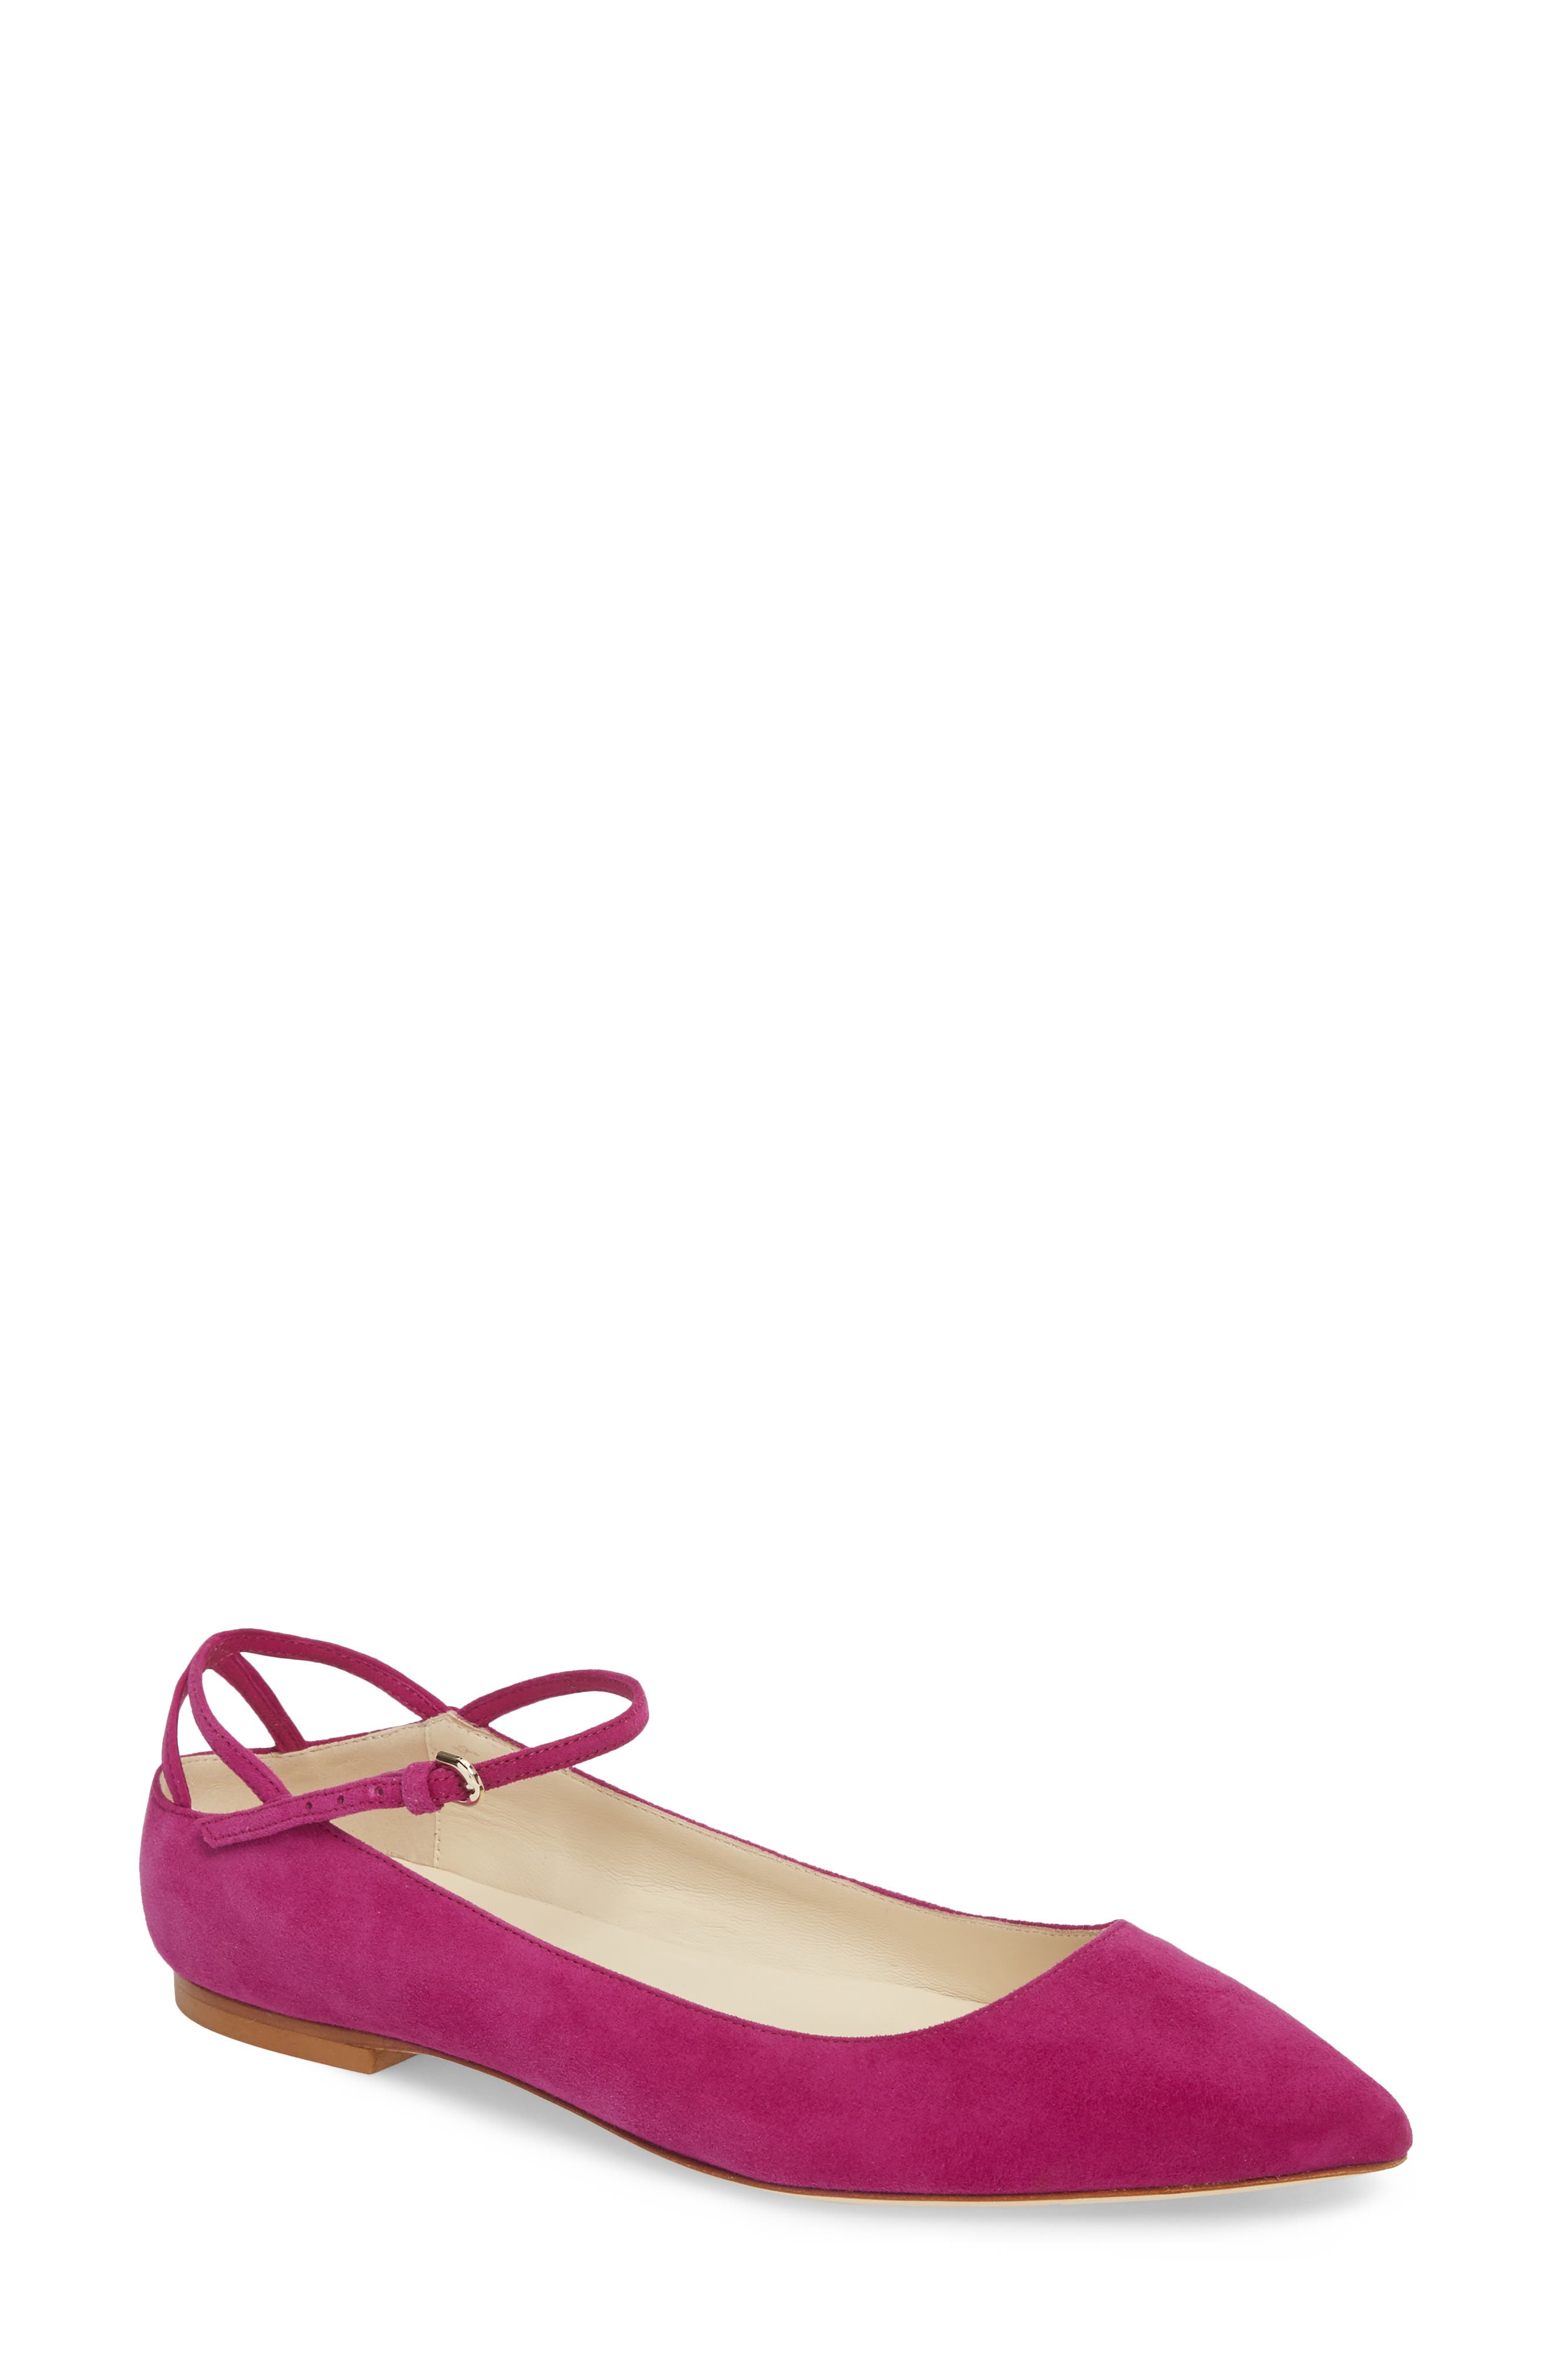 Astrid Ankle Strap Flat,                             Main thumbnail 1, color,                             Bouganvilla Kidsuede